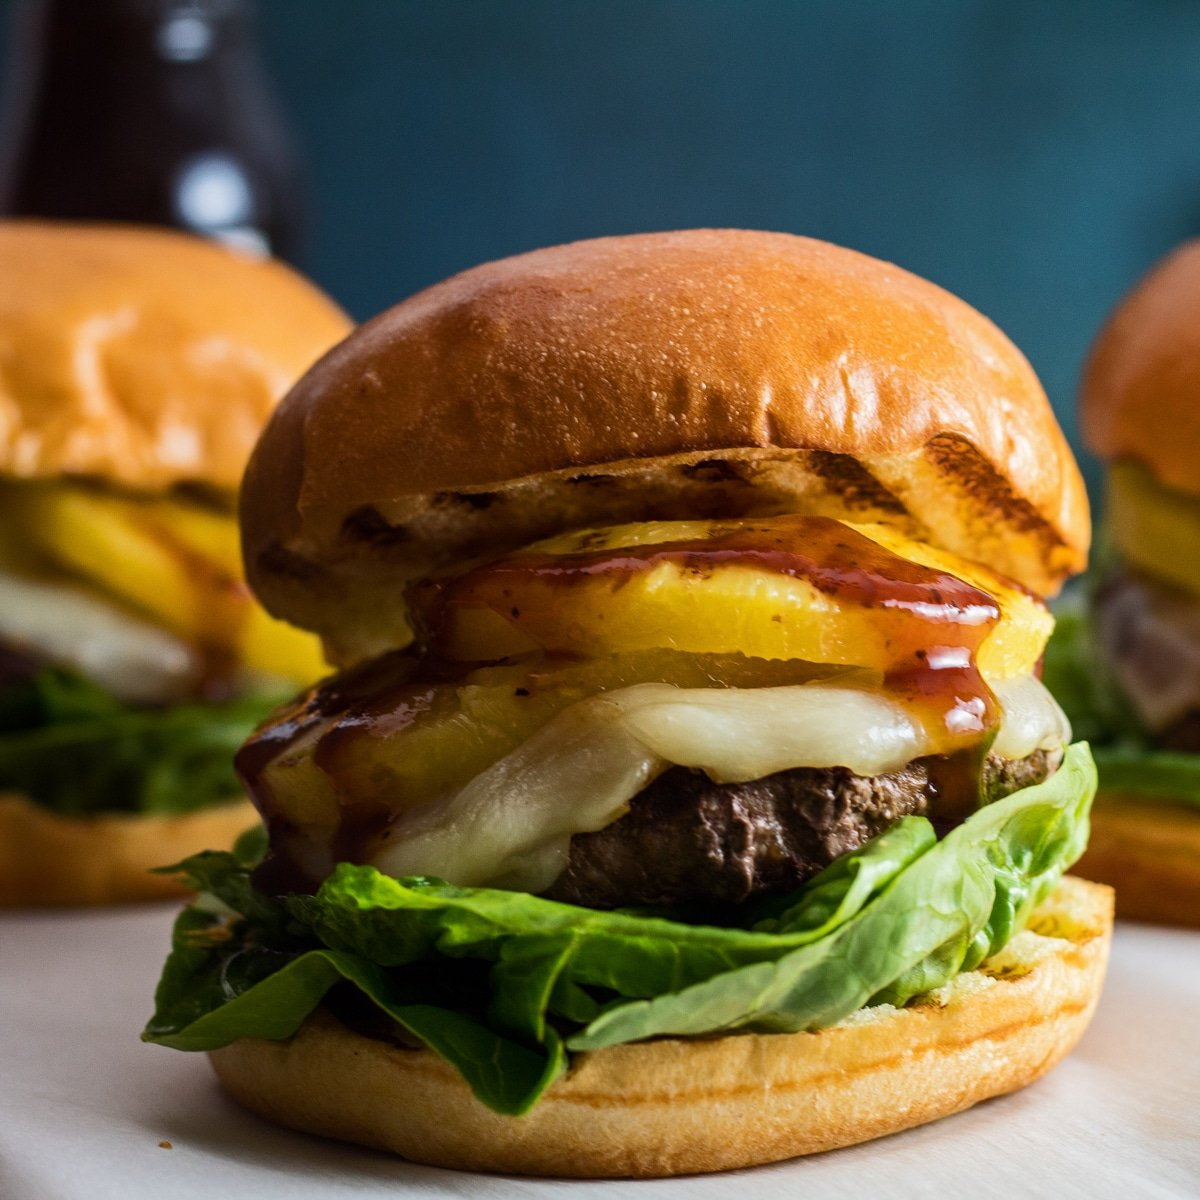 Large square image straight on closeup of the stacked Hawaiian Burger ingredients including ground beef patty, provolone cheese, grilled pineapple rings, lettuce, and teriyaki sauce on grilled brioche buns.